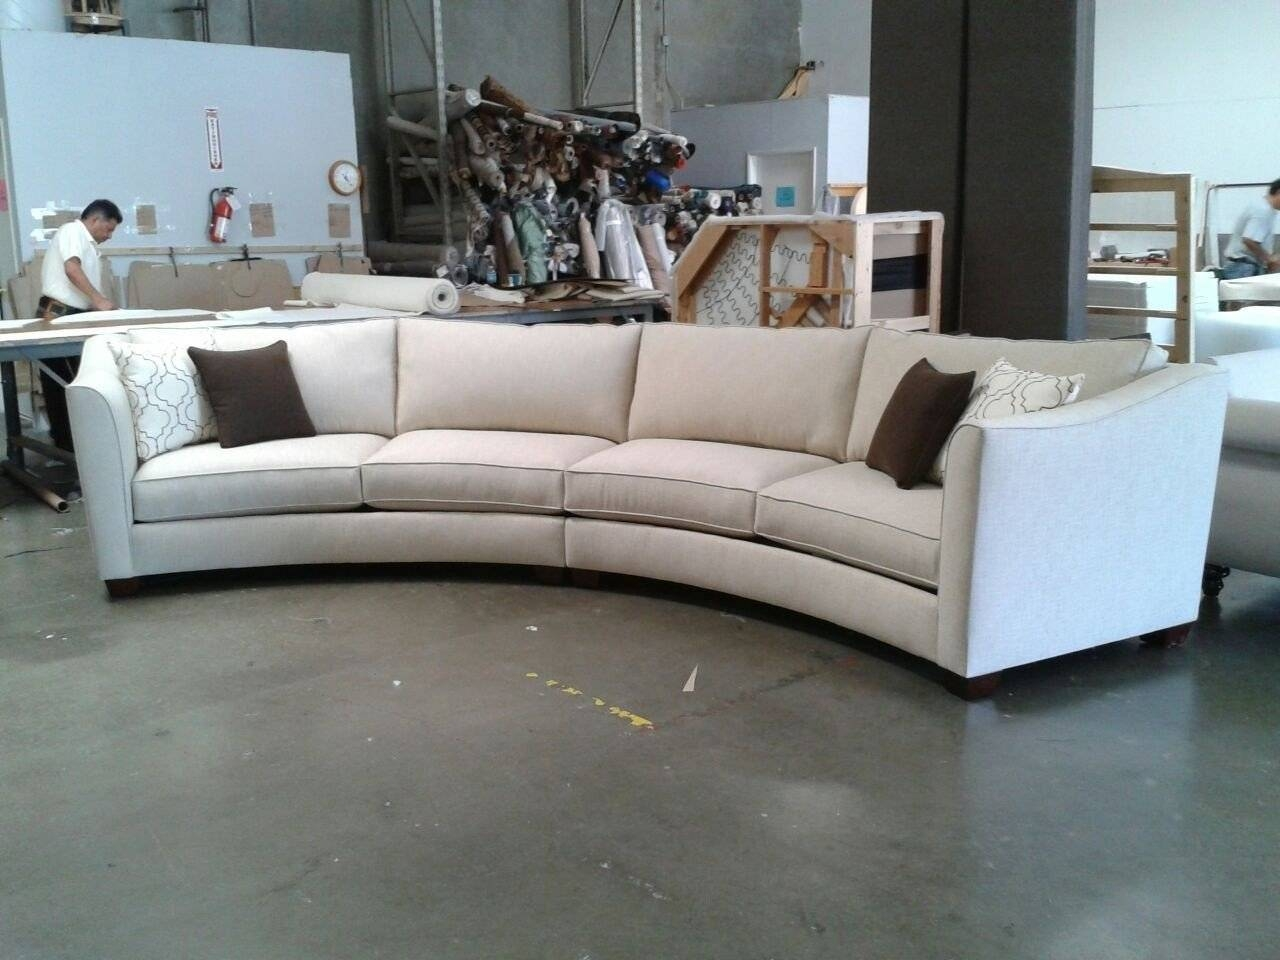 Fascinating Semi Circular Sectional Sofa 54 For 10 Piece Sectional in Semi Circular Sectional Sofas (Image 2 of 15)